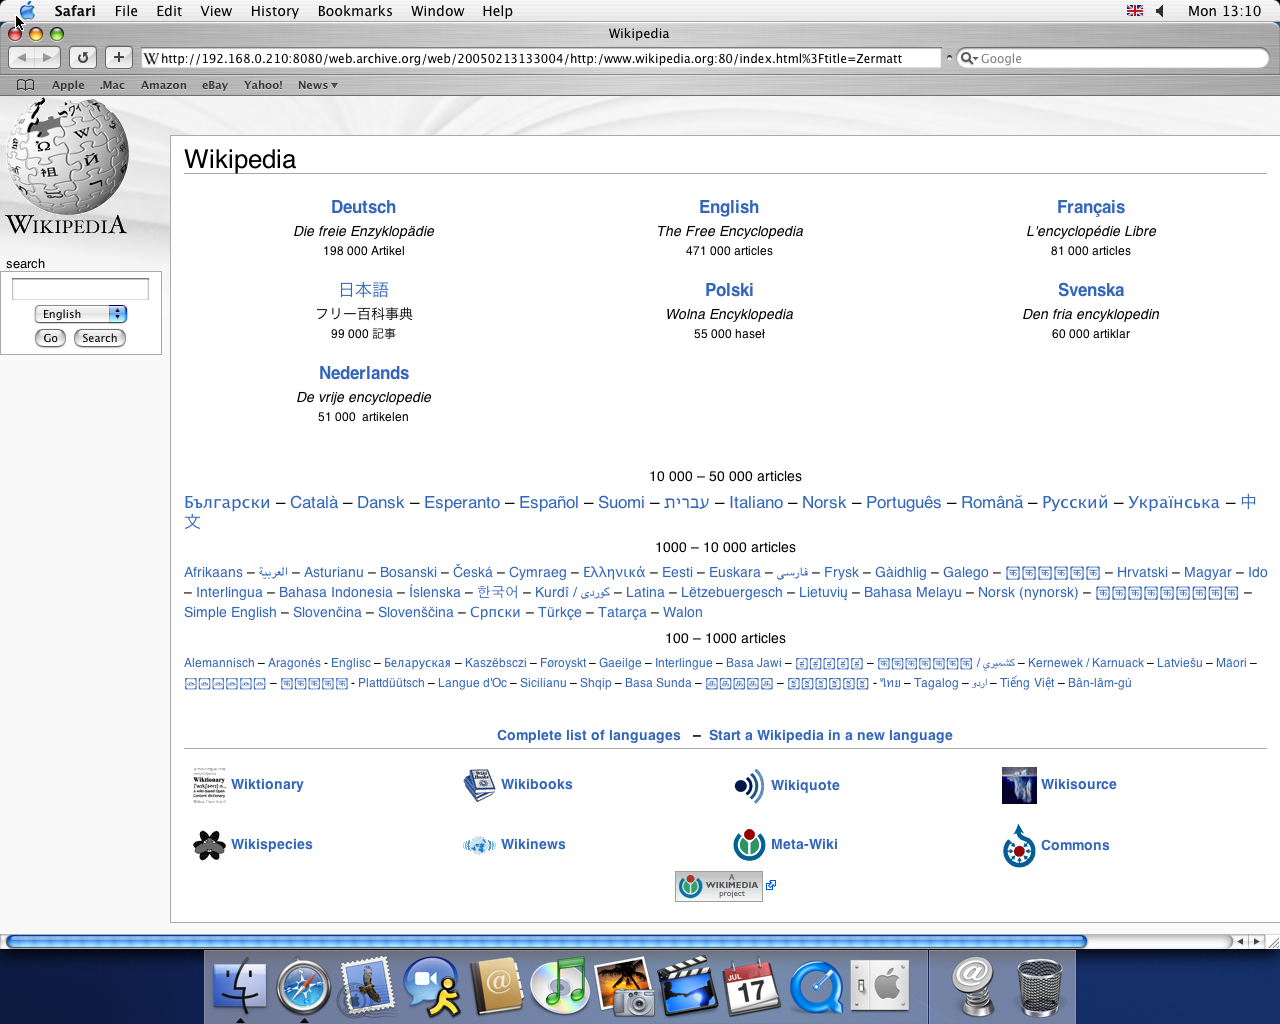 OS X 10.3 PPC with Safari 1.1 displaying a page from Wikipedia.org archived at February 13, 2005 at 13:30:04